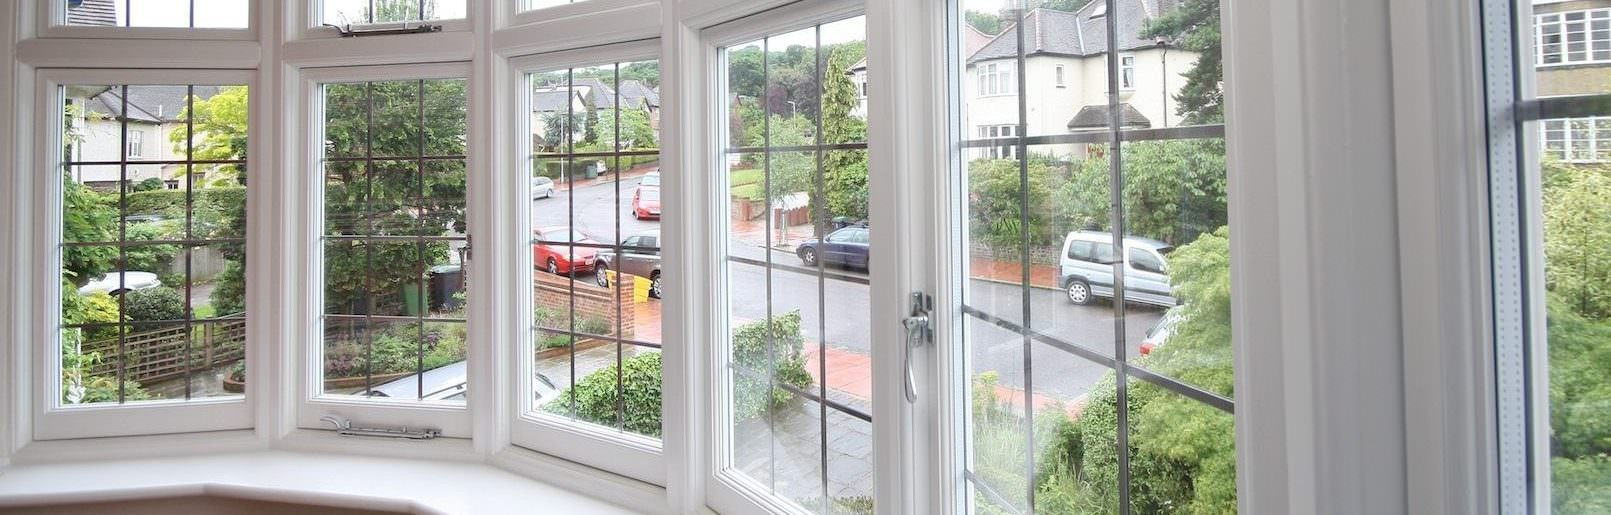 How Much Does Double Glazing Cost >> Double Glazing Costs London Window Door Prices Wimbledon